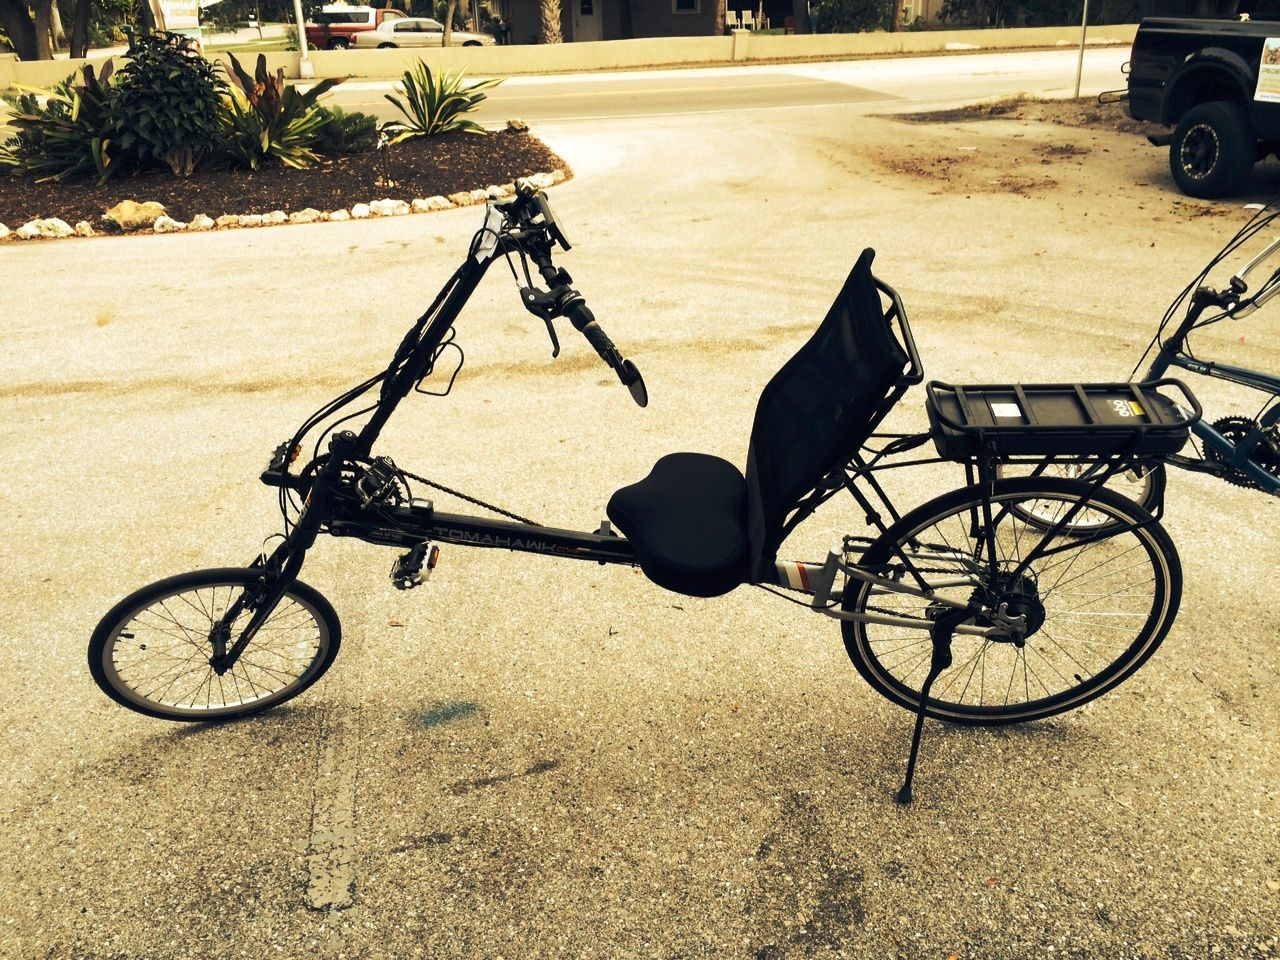 Electric Bike Outfitters Cruiser E Bike Conversion Kits Installed On An Ez Sport Cx Recumbent Bike Electric Bike Electric Bike Kits Bike